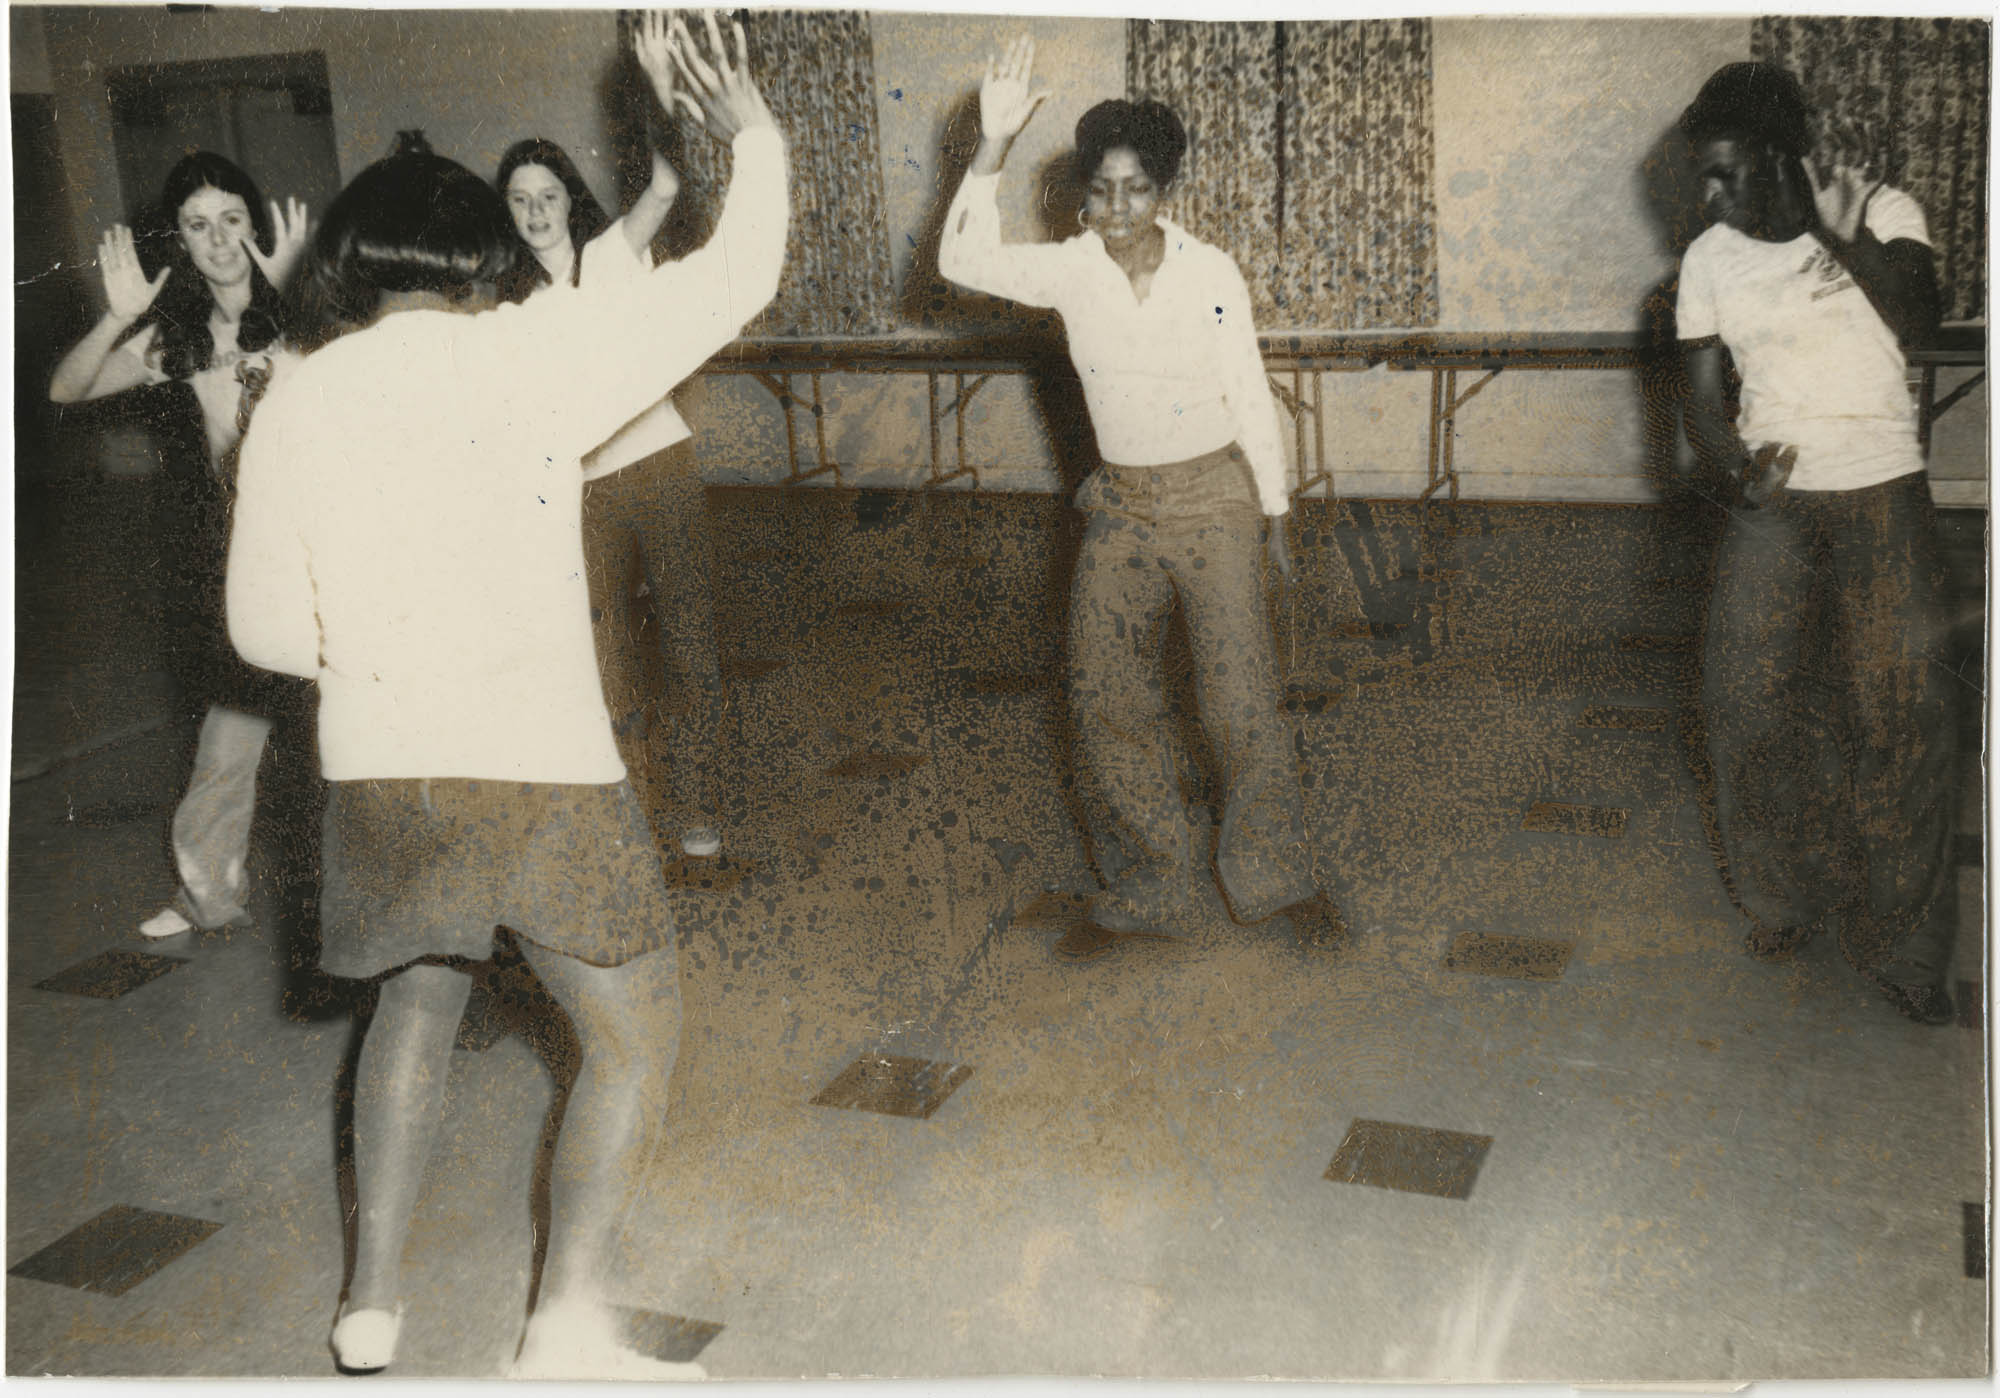 Photograph of People Dancing